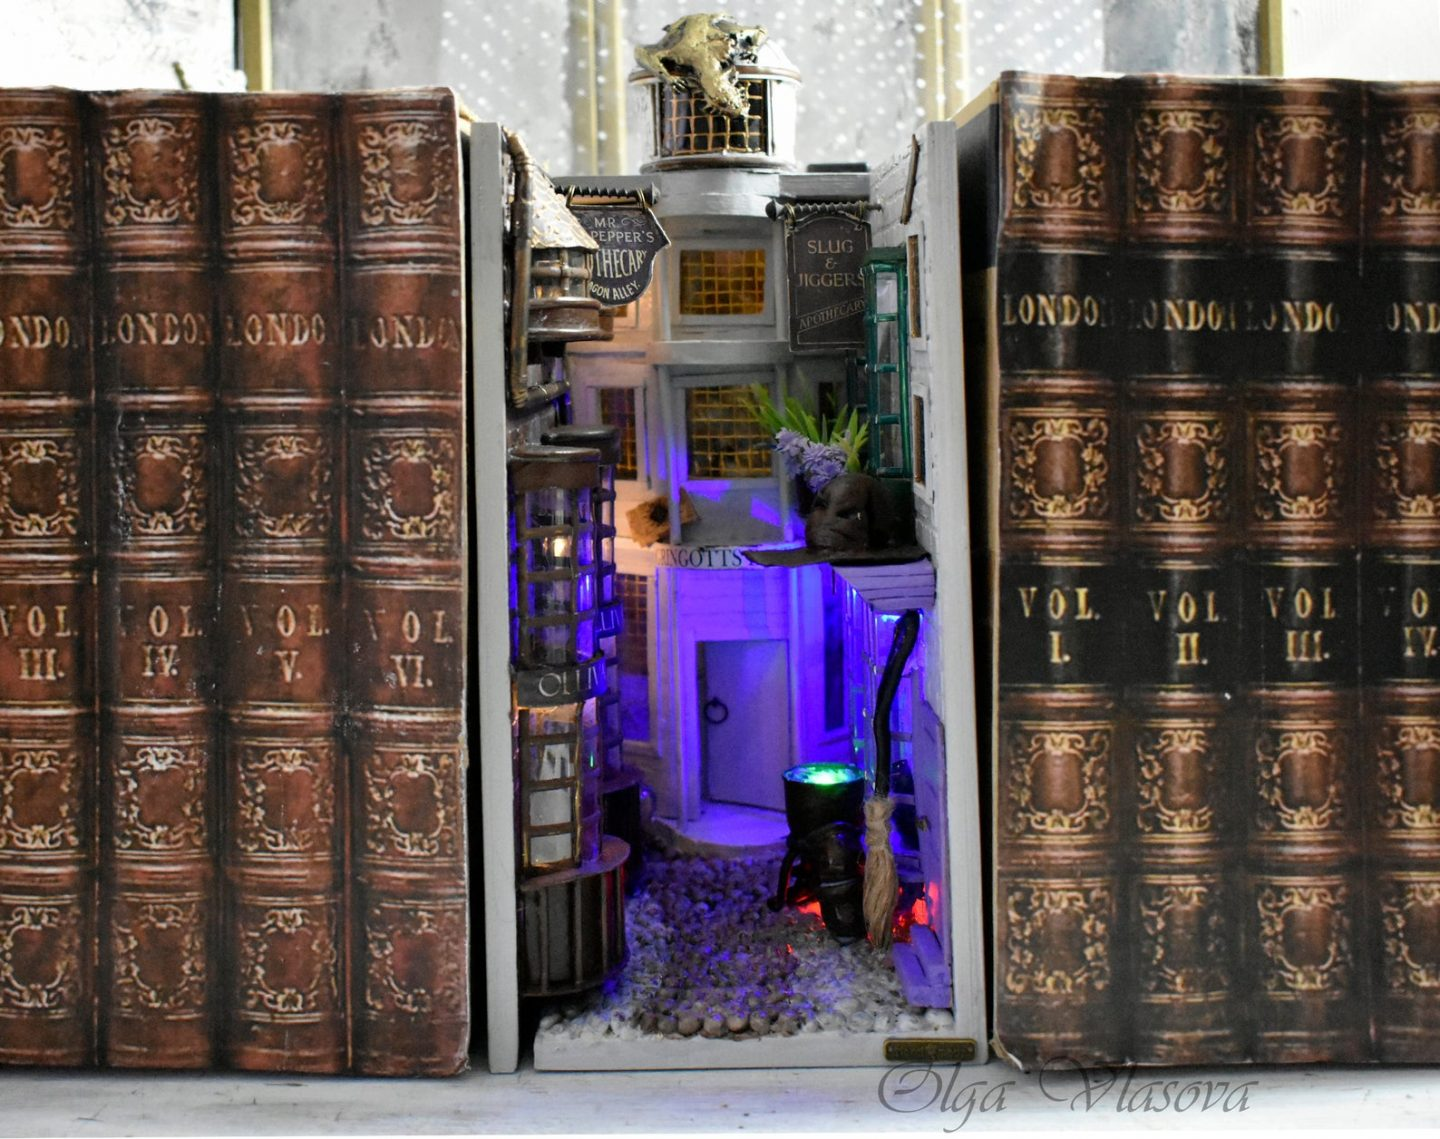 A bookshelf diorama of Diagon Alley between rows of books